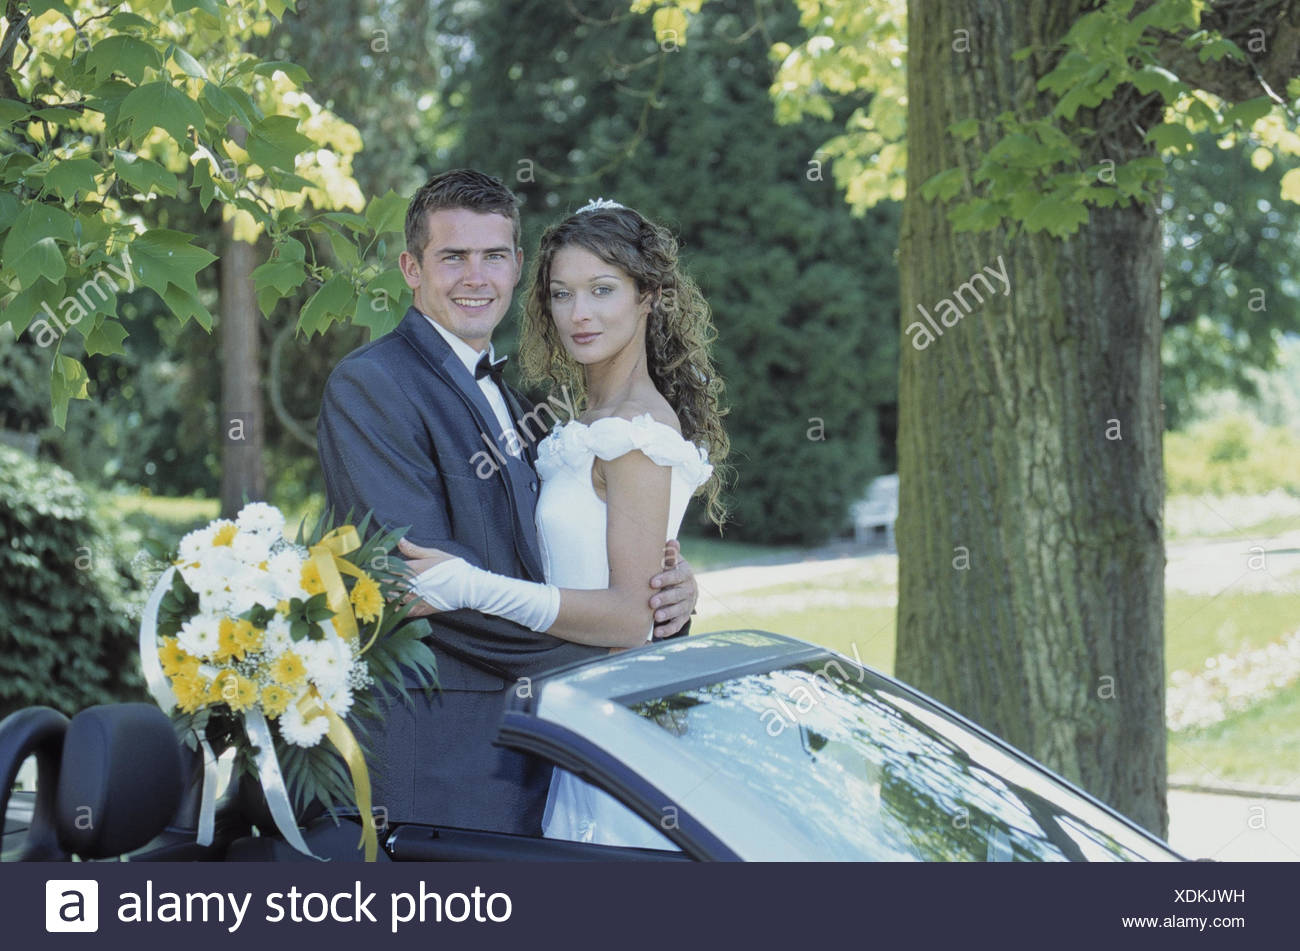 Wedding couple, bouquet, car, detail marriage, marriage, marriage ceremony, wedding, Before, wedding, connection, marry, marry, bride and groom, contently, satisfaction, luck, happily, together, joy, please, bride and groom, bridal bouquet, park Stock Photo